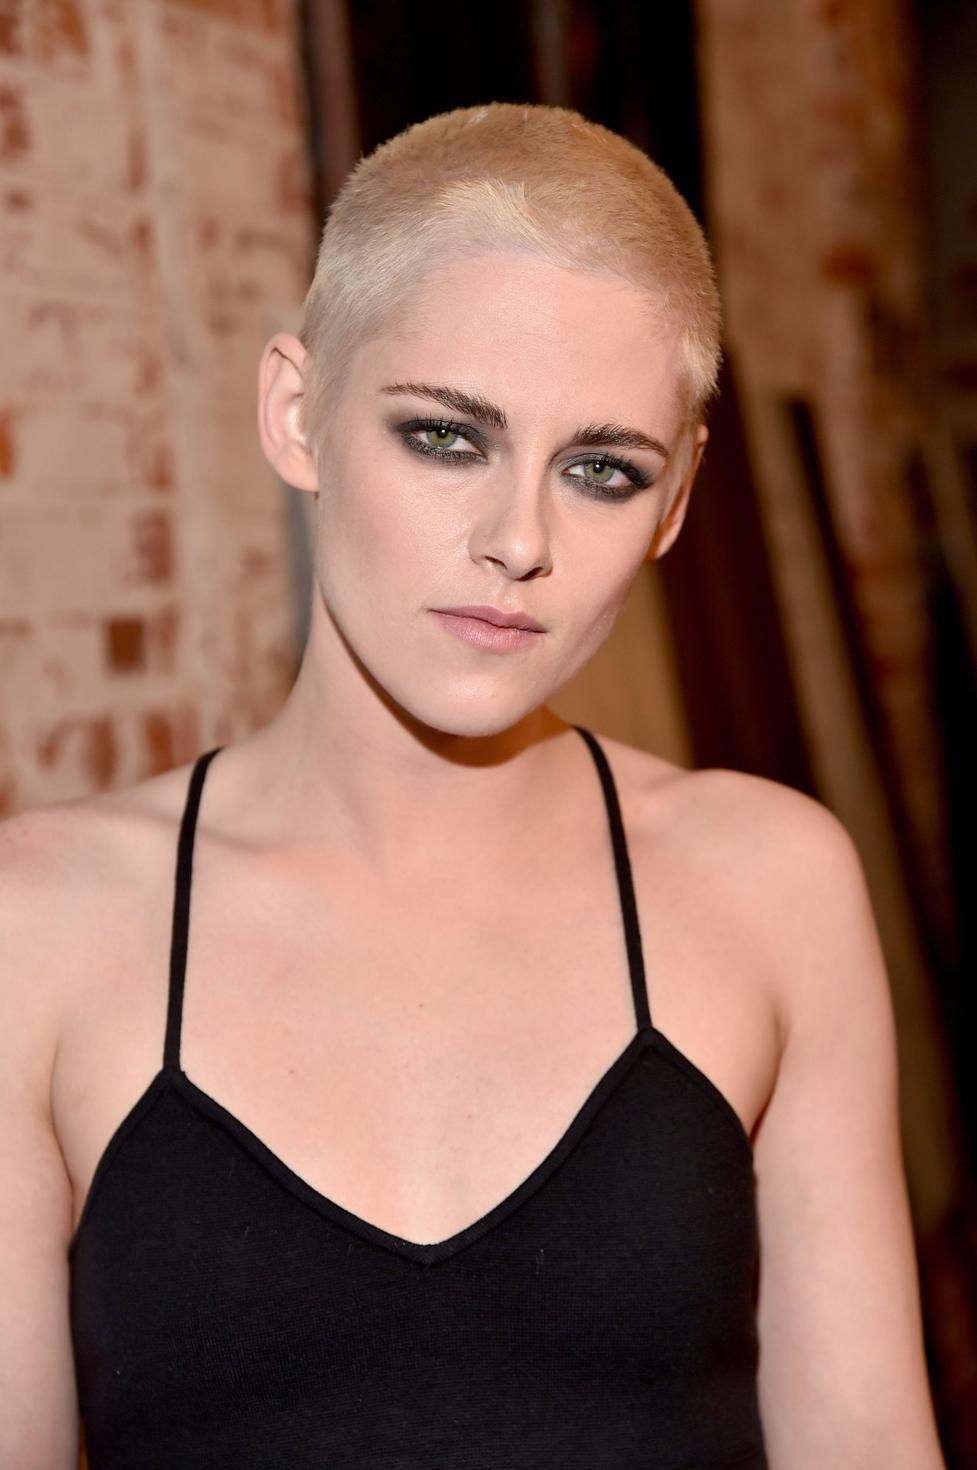 """Kristen Stewart debuted her new shaved look last week, and said of the dramatic cut, """"""""It's practical... [in upcoming move 'Underwater'] I'm not going to be able to have touch-ups once they put the helmet on my head."""""""